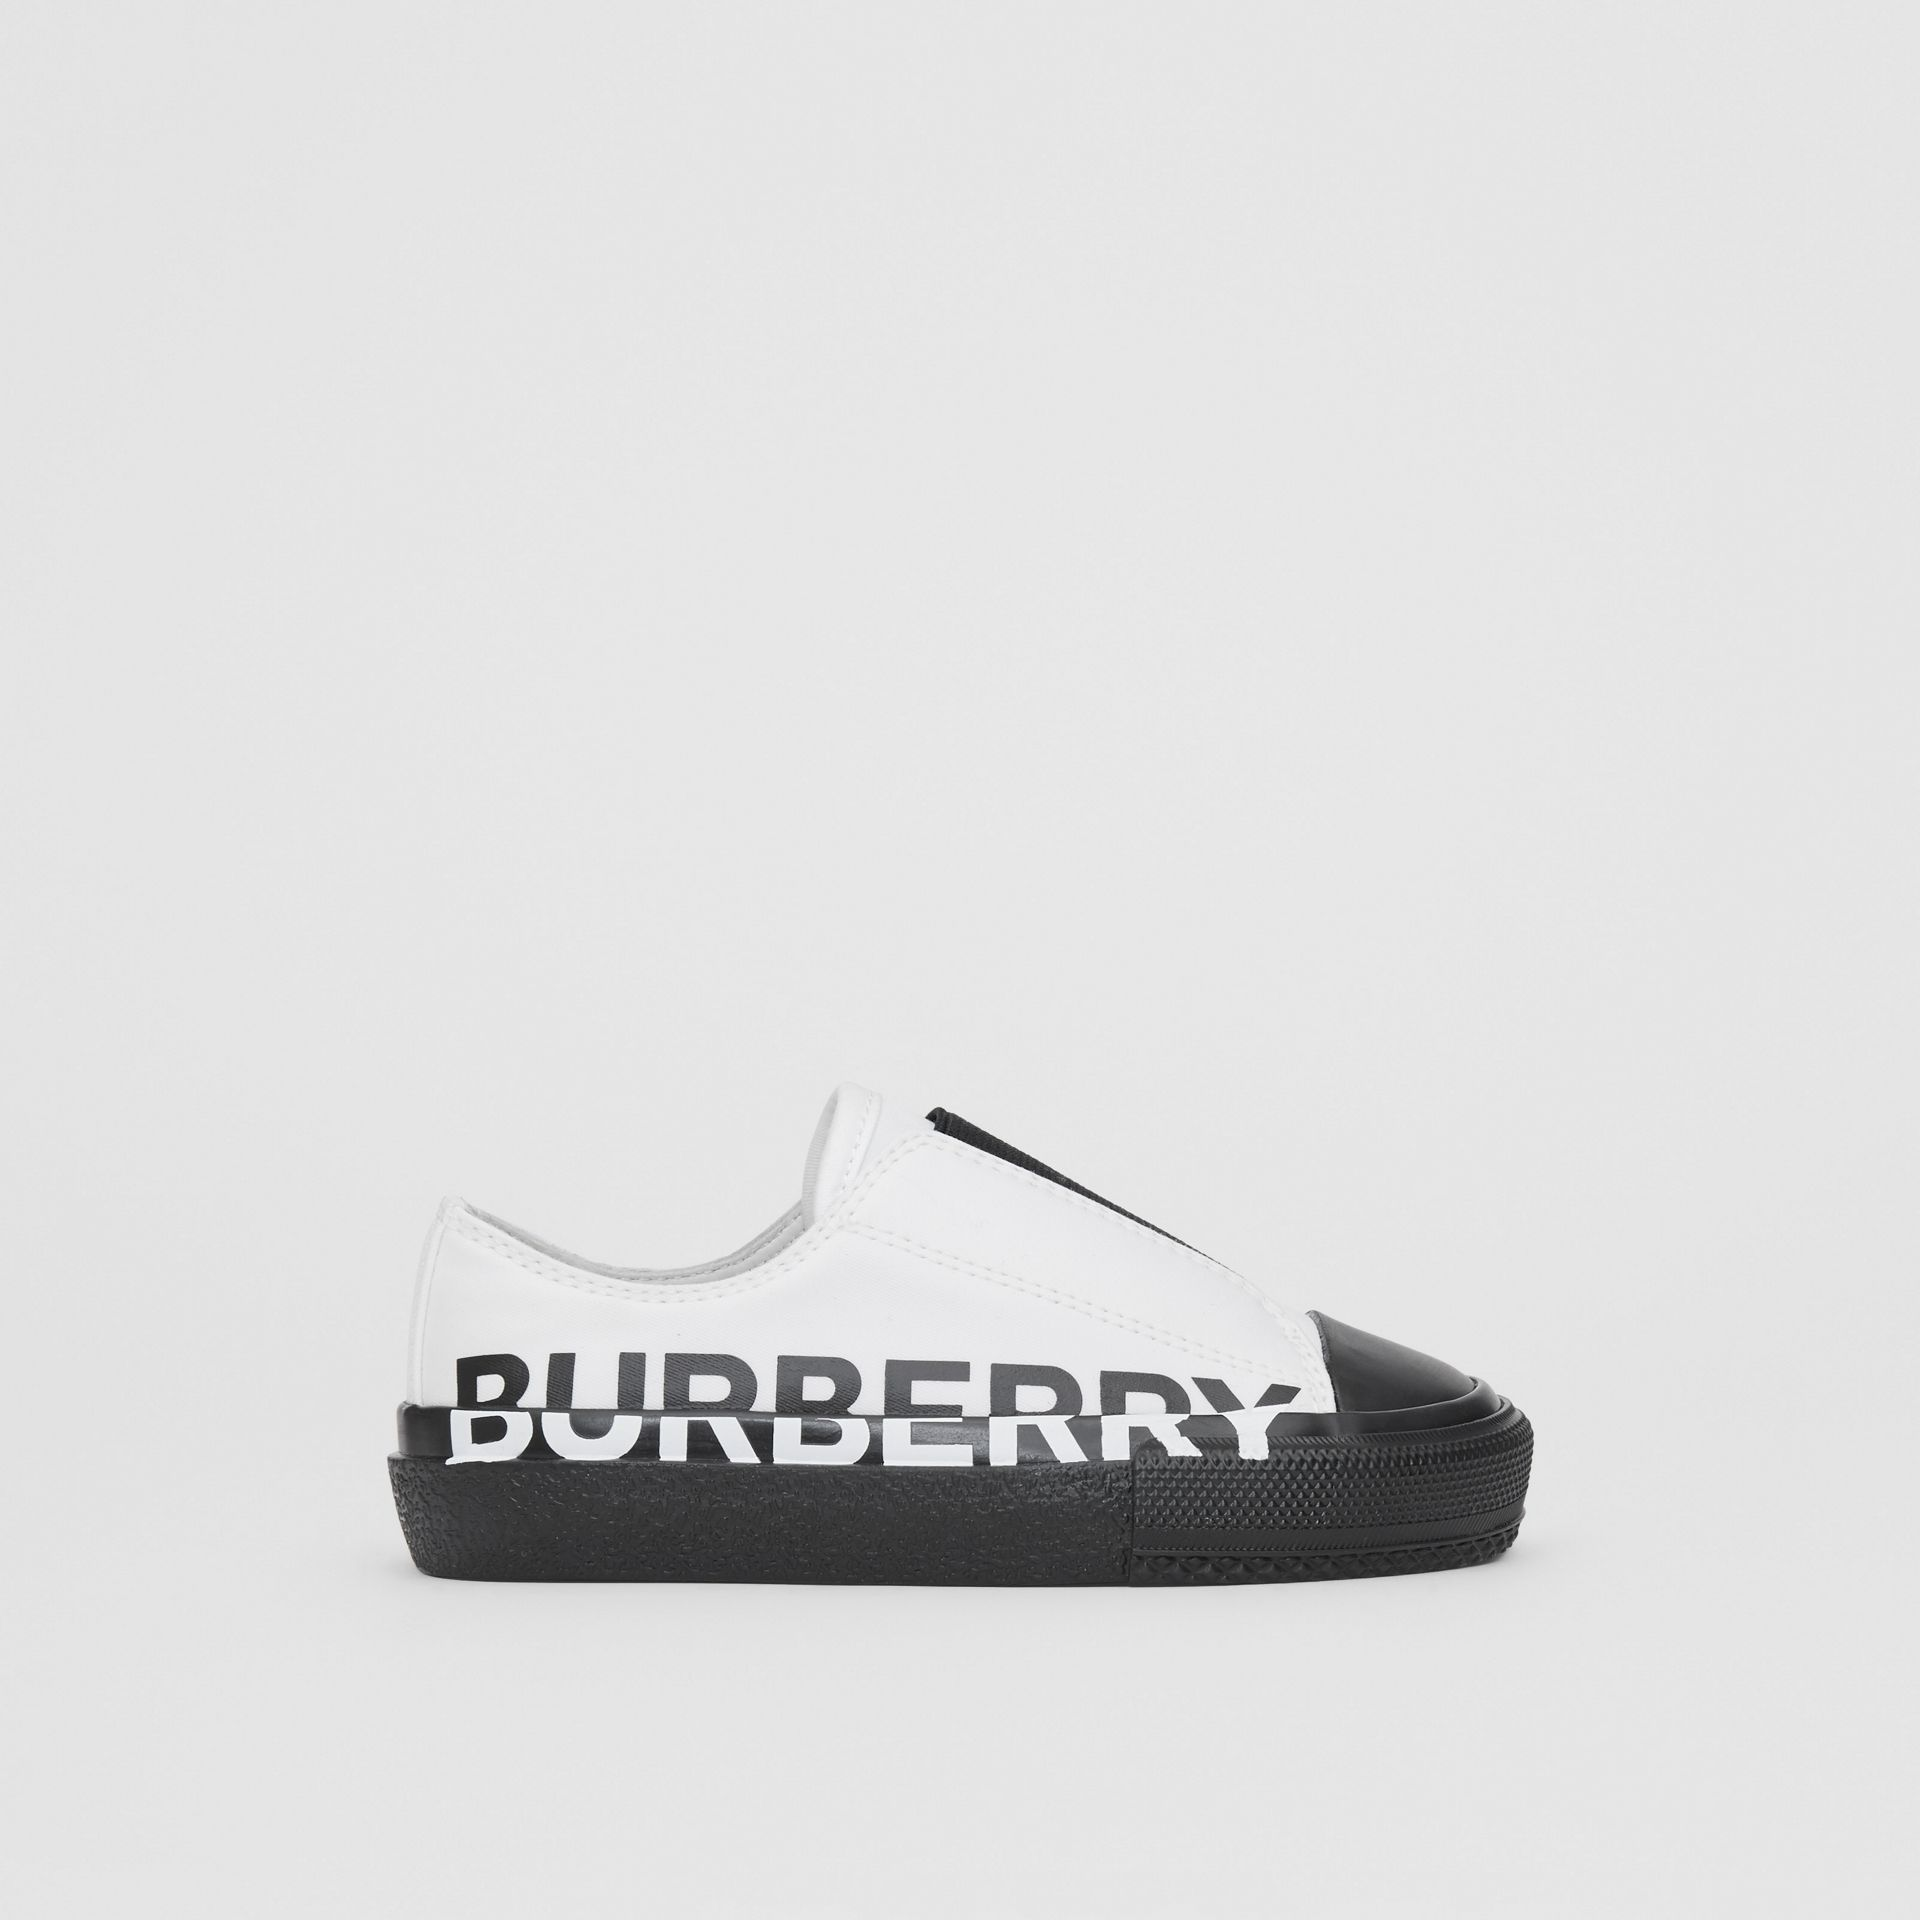 Logo Print Two-tone Cotton Gabardine Slip-on Sneakers in Optic White/black - Children | Burberry Singapore - gallery image 3